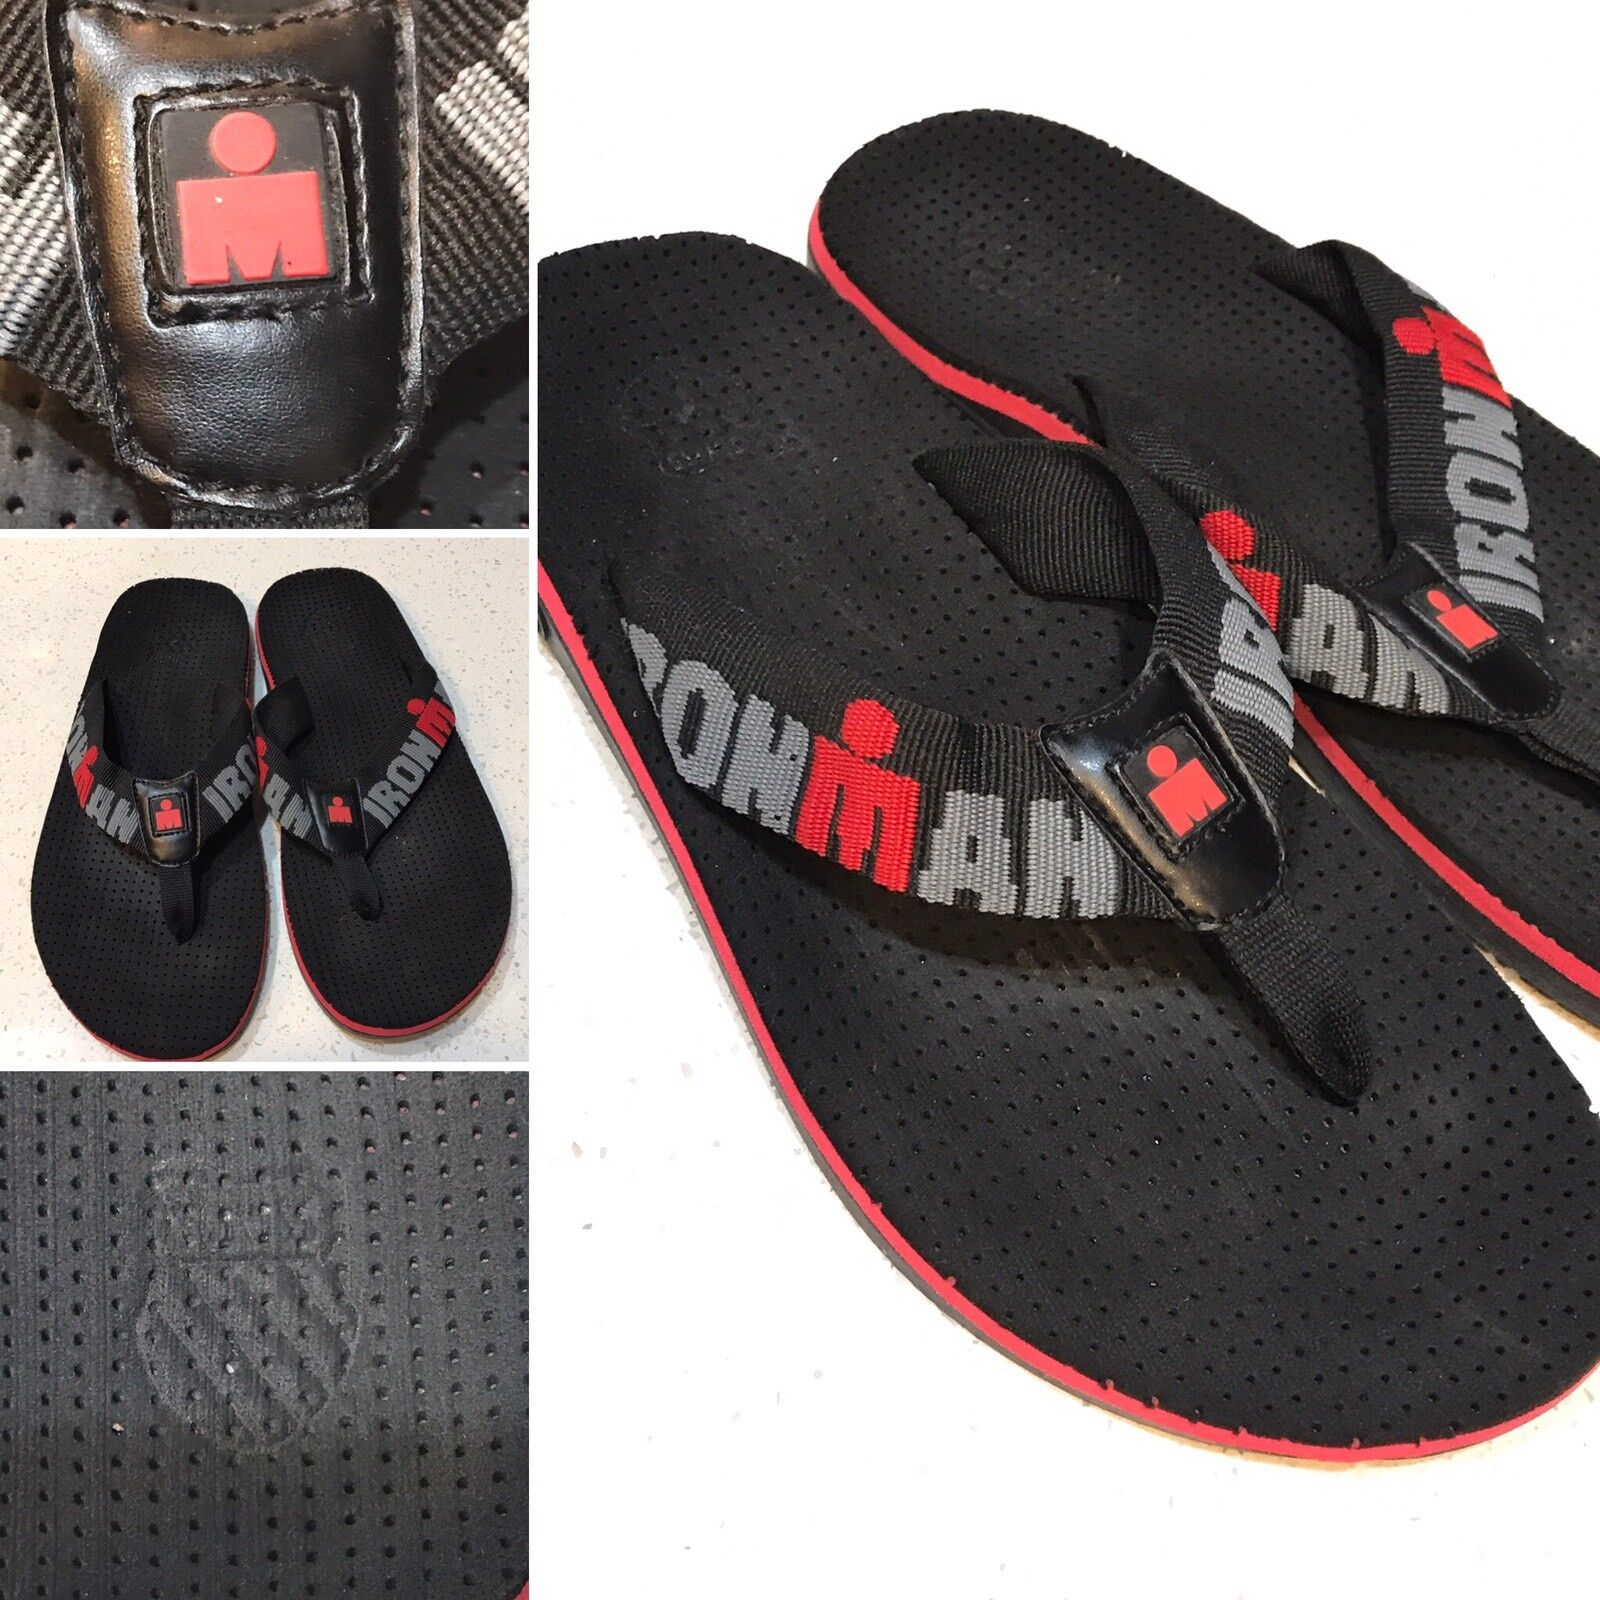 K-SWISS Ironman Men's Thong Sandals shoes Size 9-10 Red Black